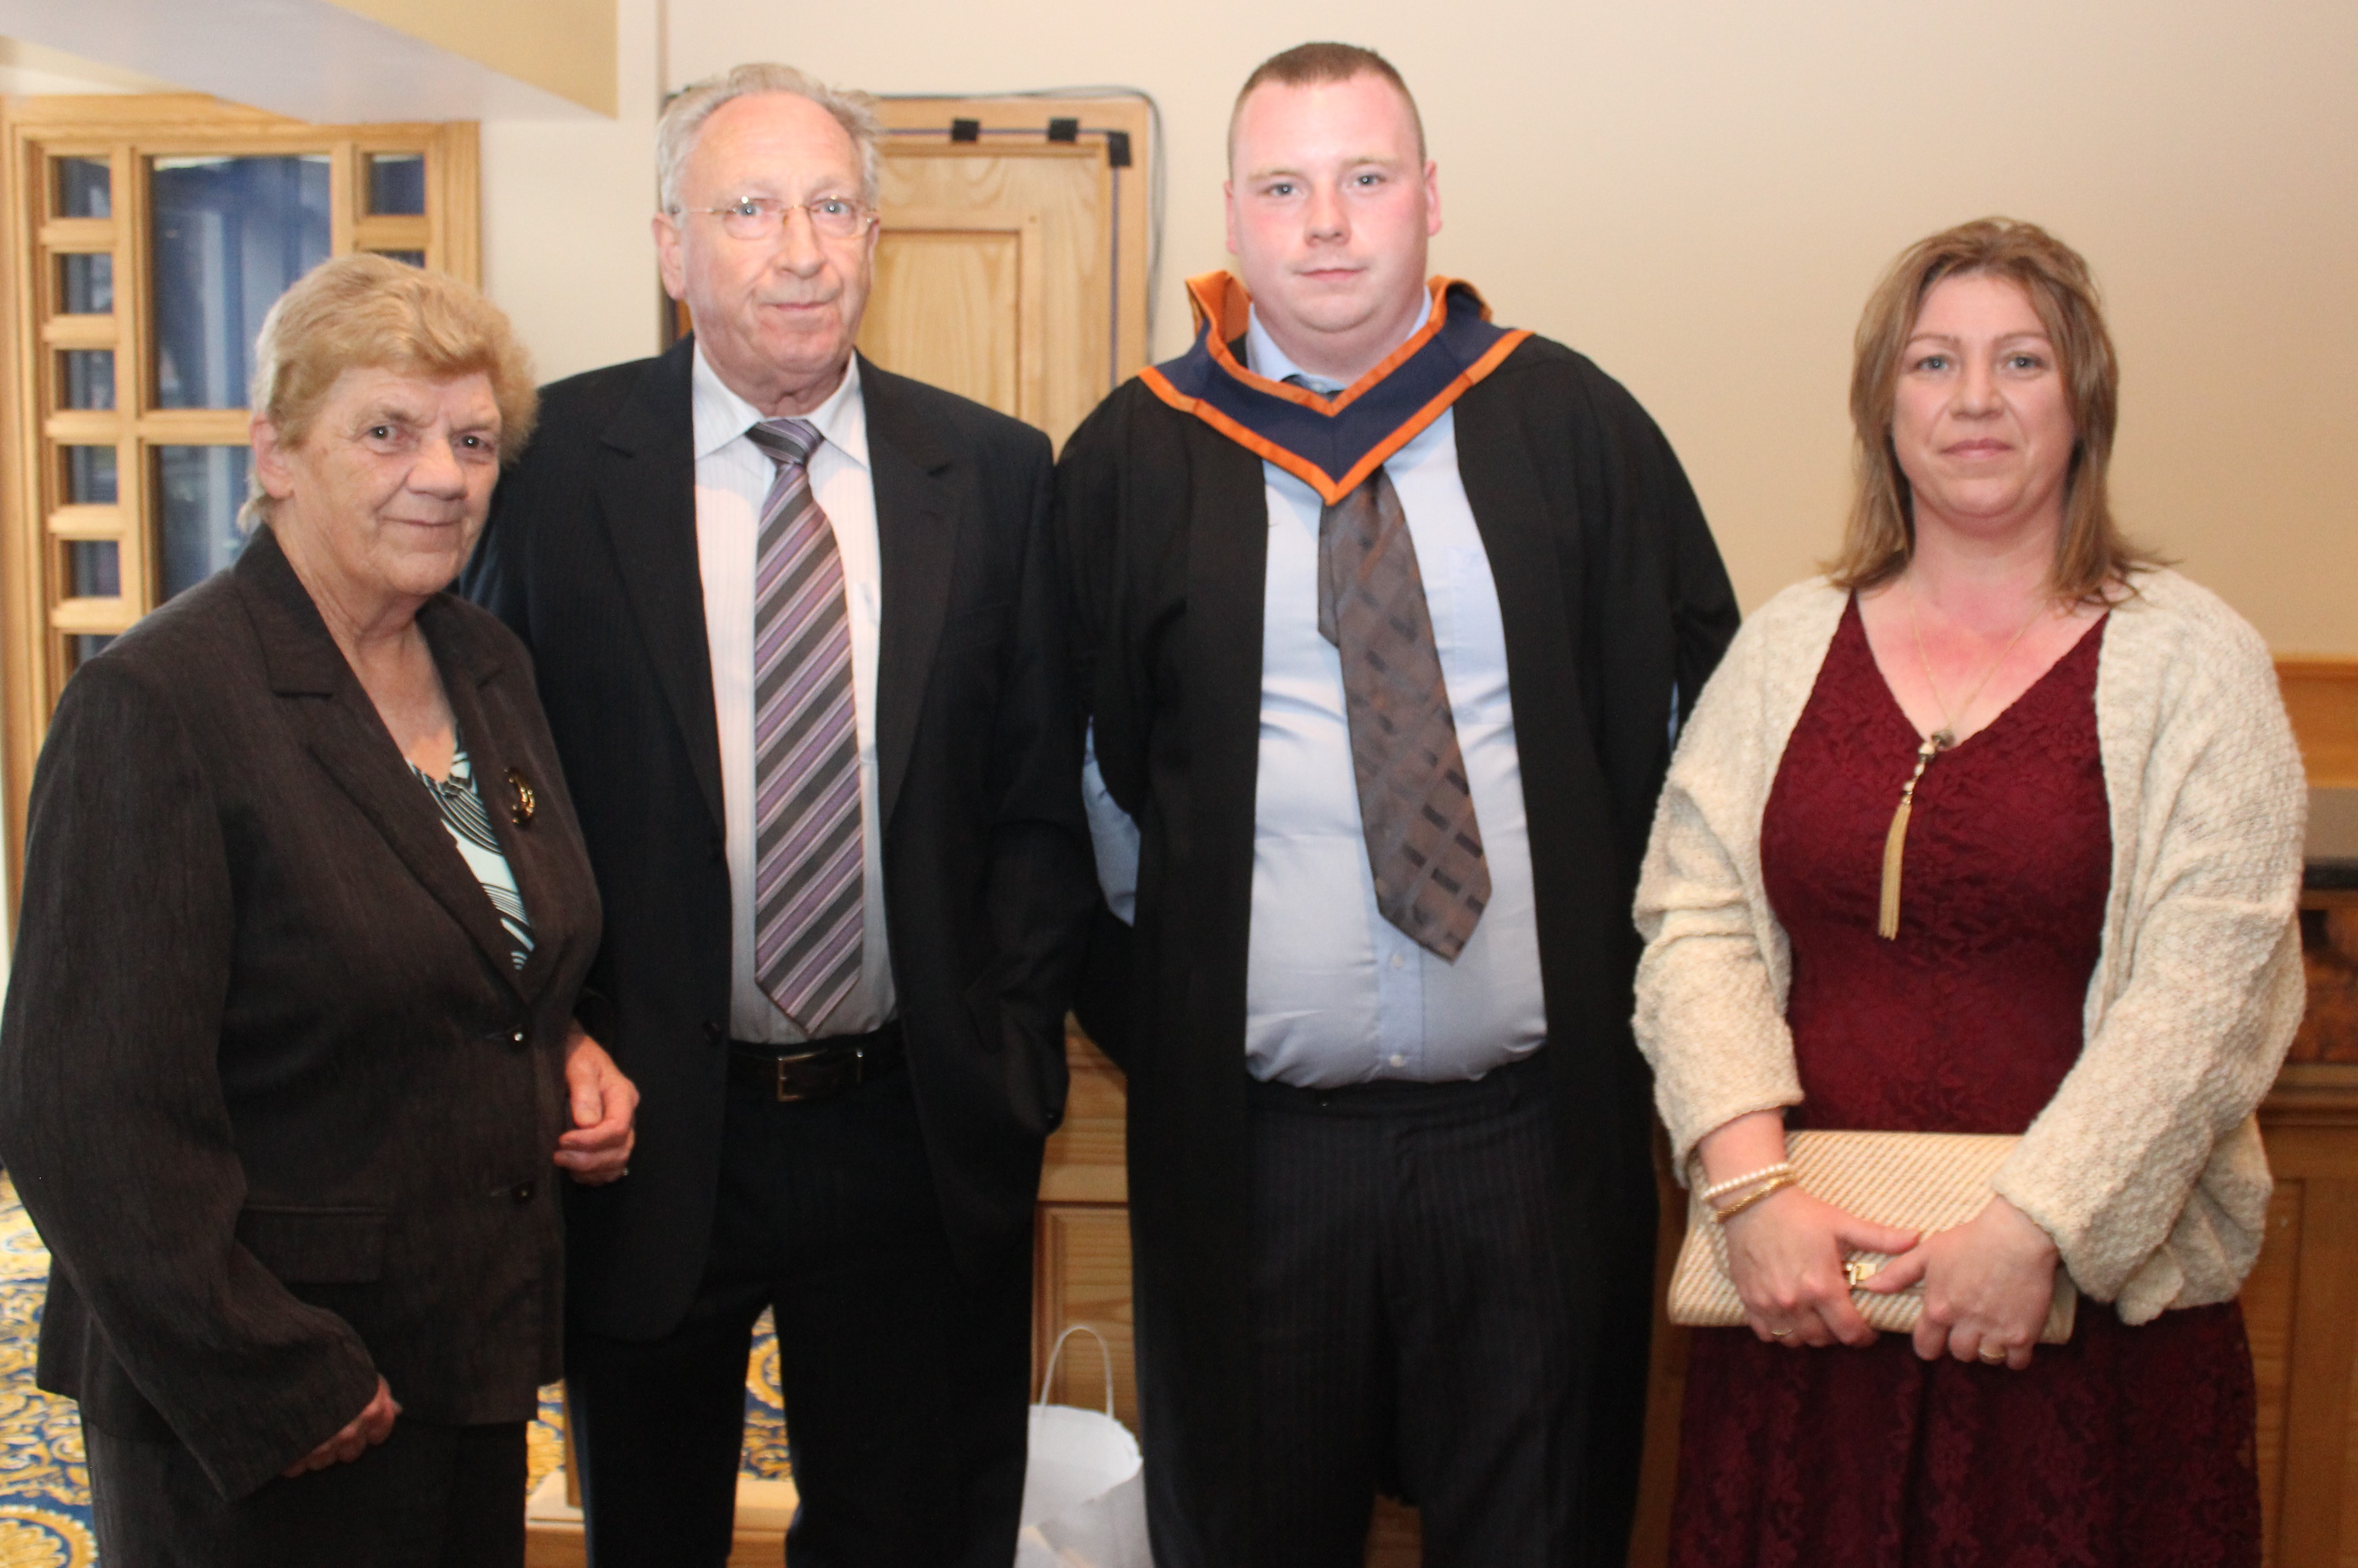 Sarah McCrann, Paddy McCrann, Lee Devine, Sligo (Production Engineering) and Aileen McCrannat the IT Tralee graduation ceremony at the Brandon Hotel on Friday. Photo by Gavin O'Connor.